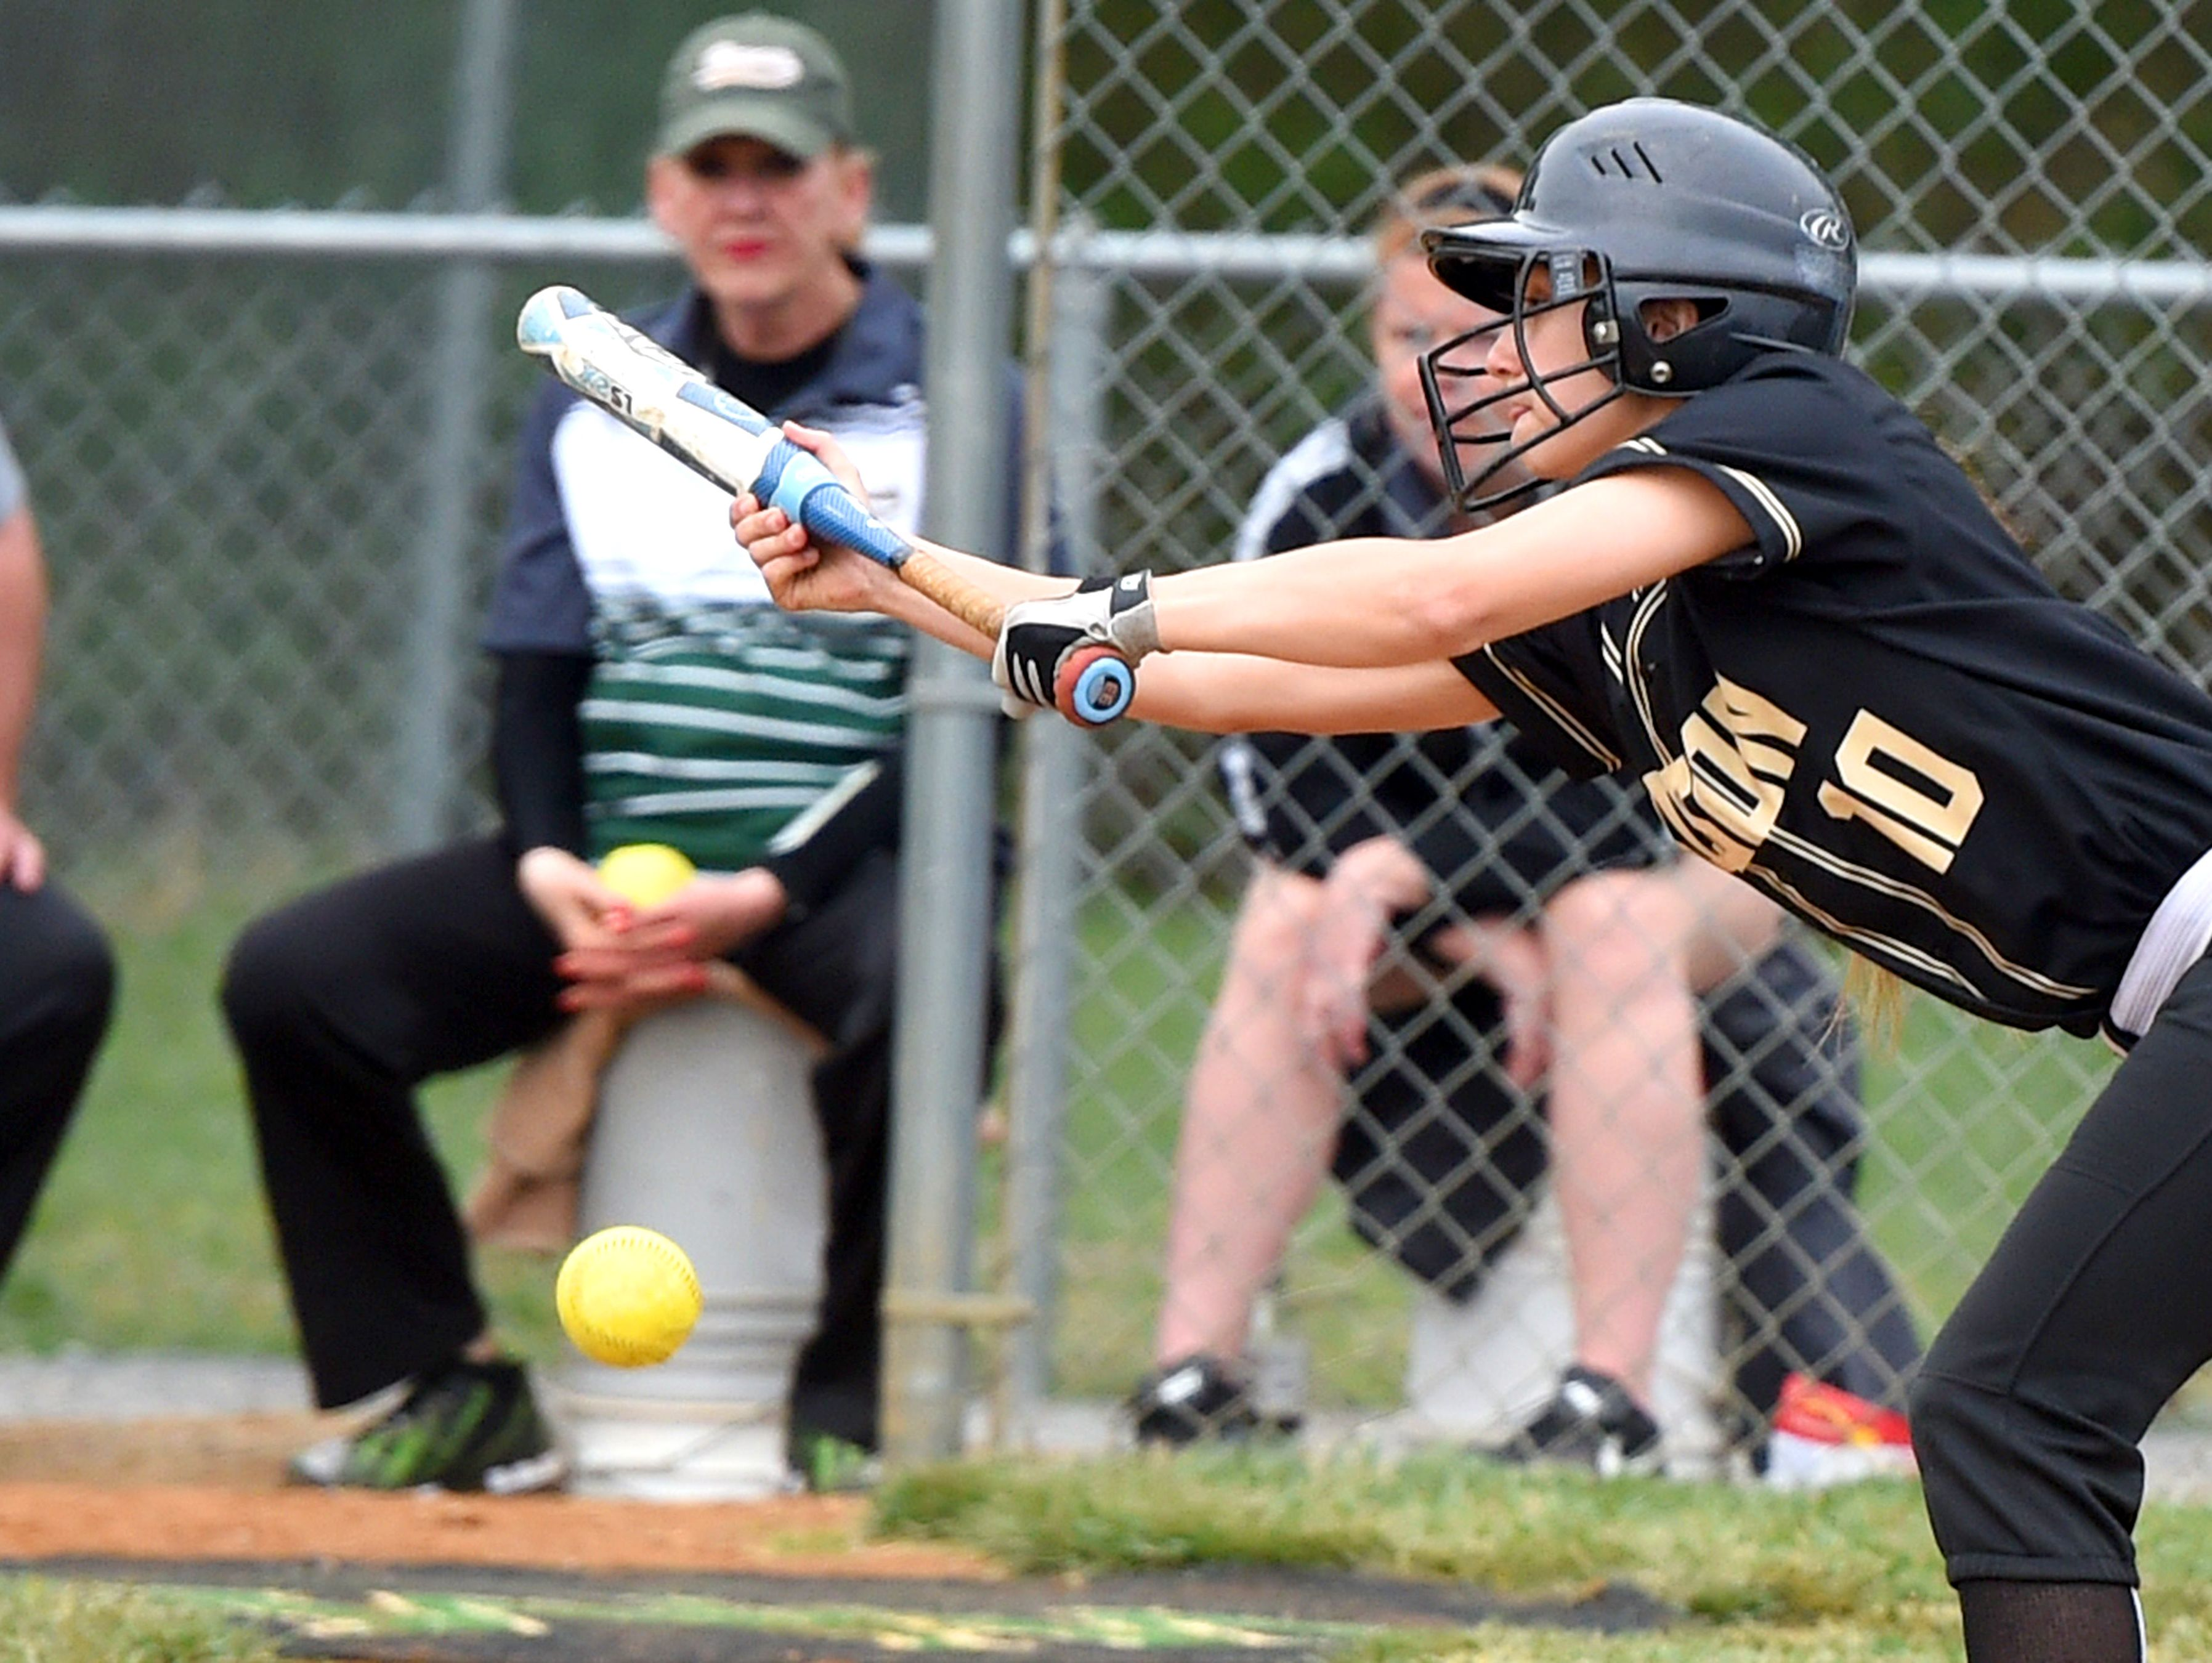 Buffalo Gap's Destiny Harper connects with the ball as she bunts in the second inning during a softball game played in Fishersville on Friday, April 1, 2016.